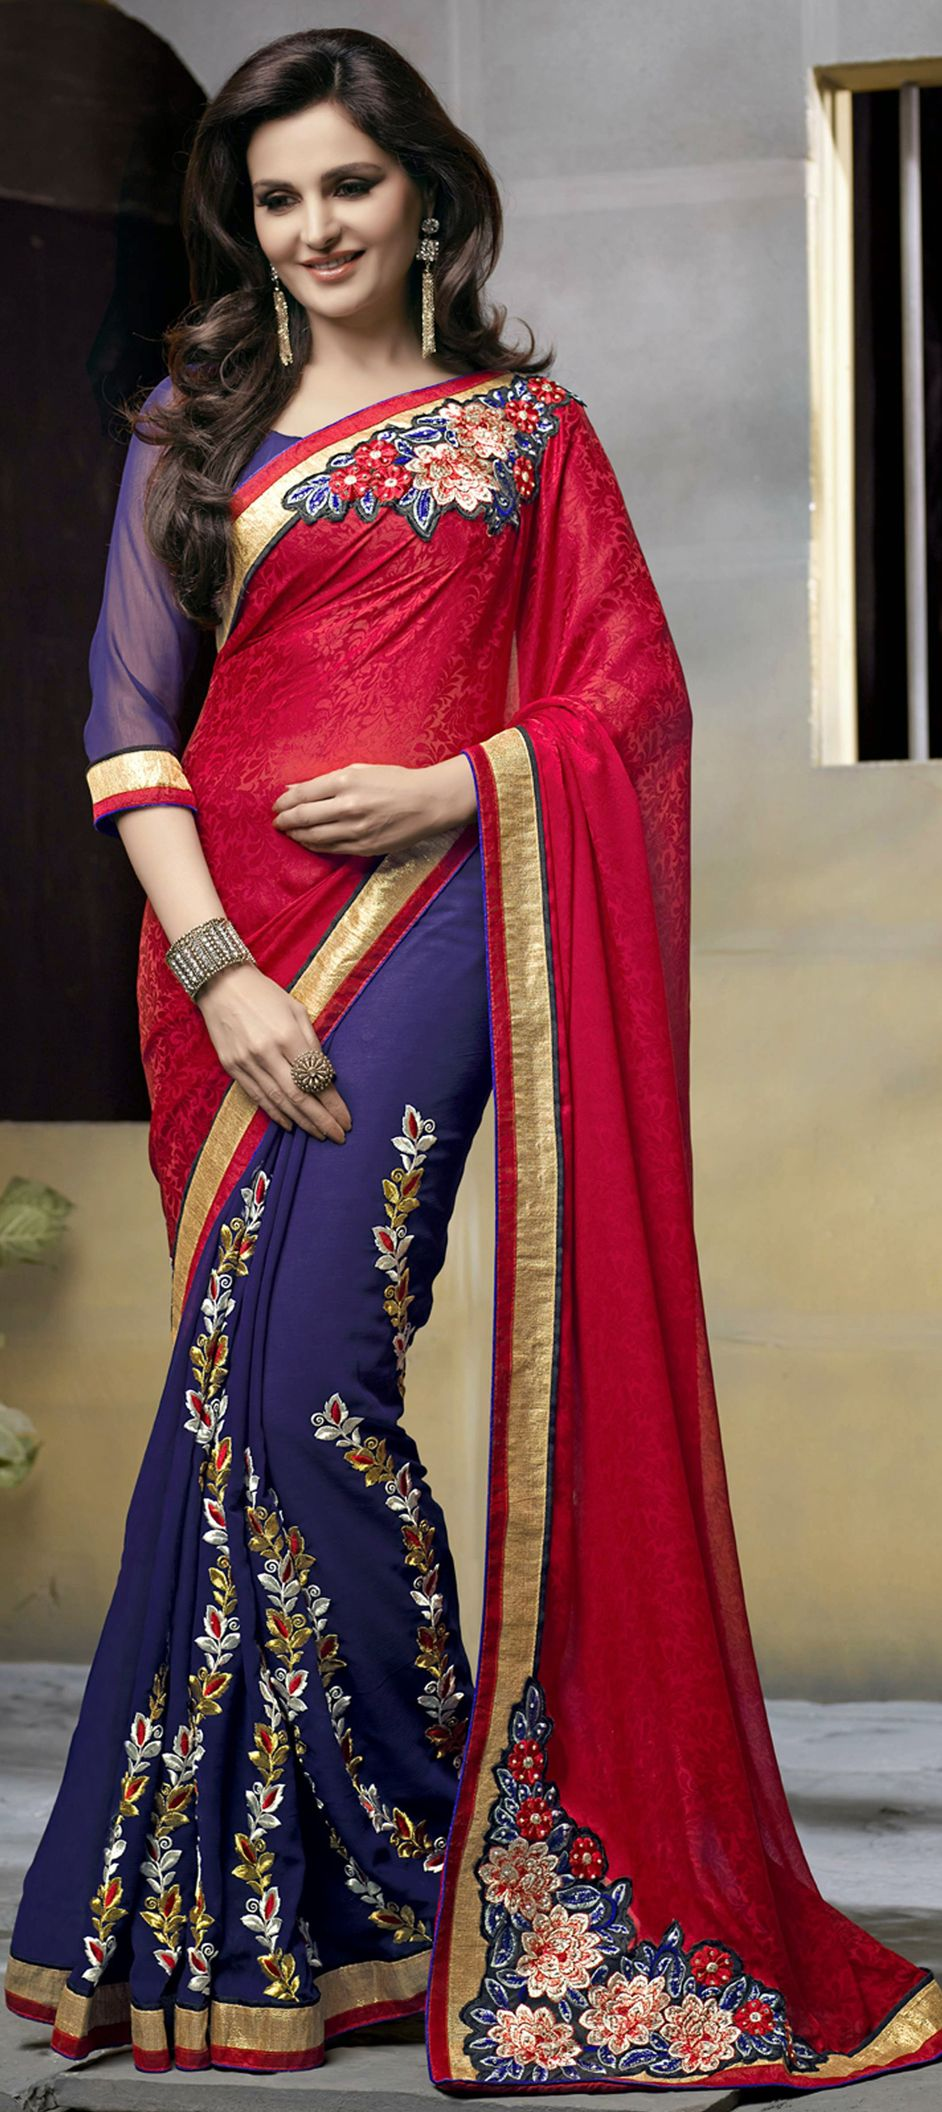 165050: Blue, Red and Maroon color family Embroidered Sarees, Party ...